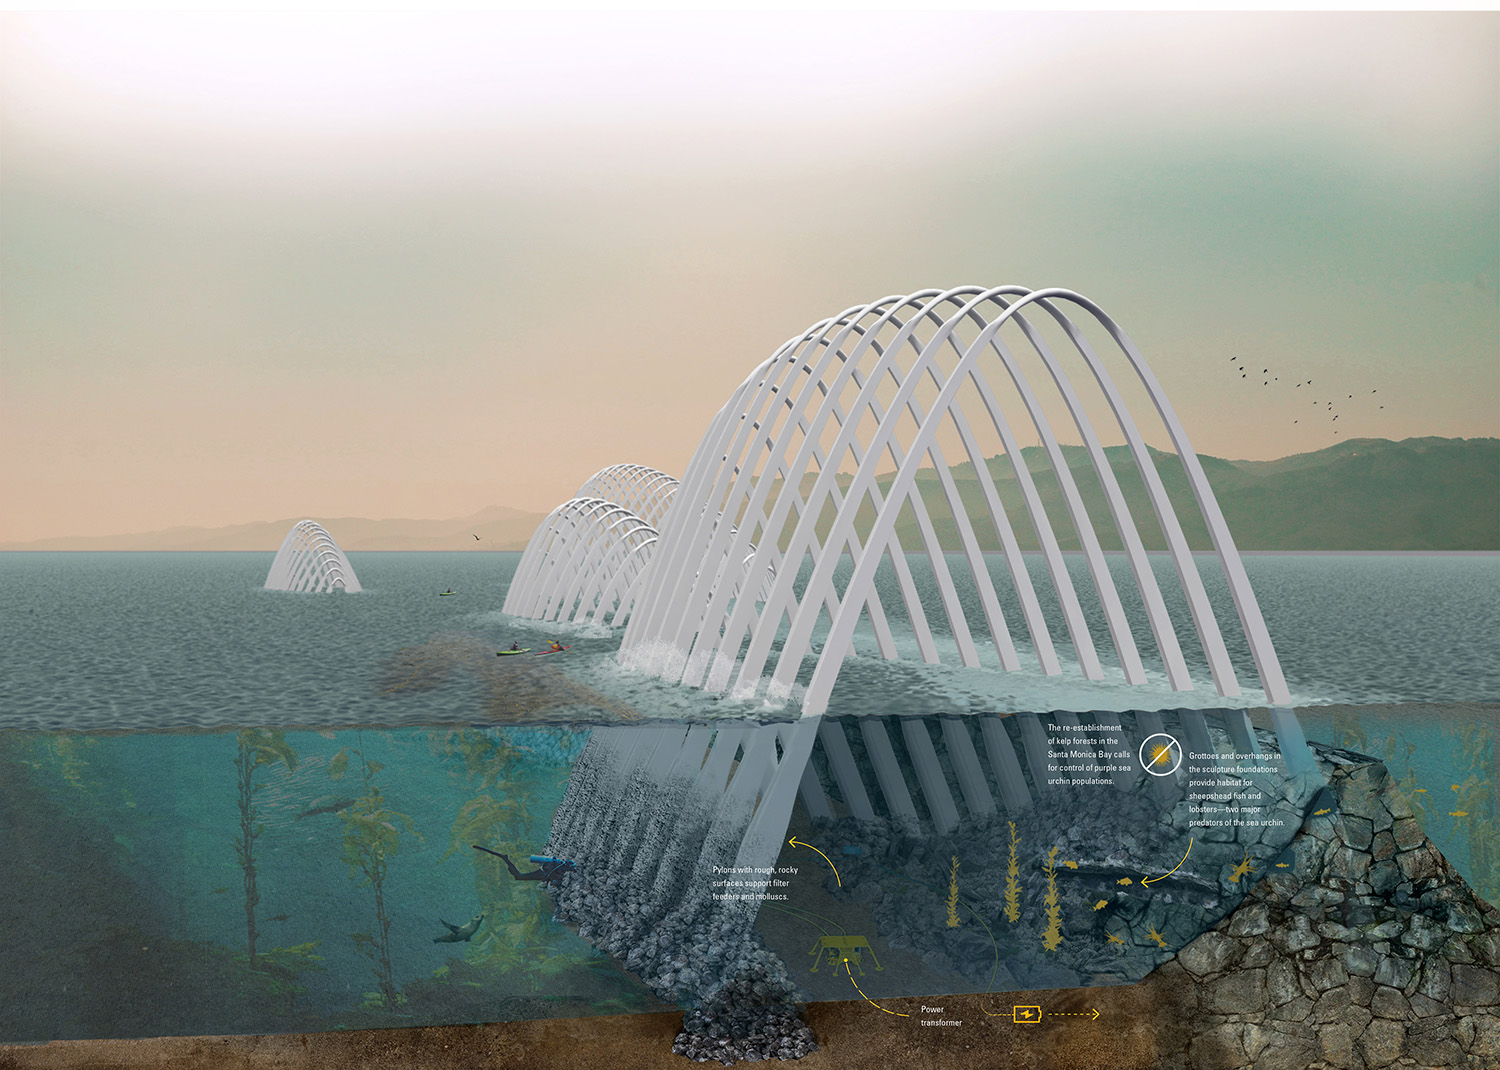 LAGI, Land Art Generator Initiative 2016, Santa Monica, land art, renewable art, energy-generating art, cetacea, wave energy converter, solar power, photovoltaics, wave energy, Windbelt, University of Oregon, Keegan Oneal, Sean Link, Caitlin Vanhauer, Colin Poranski